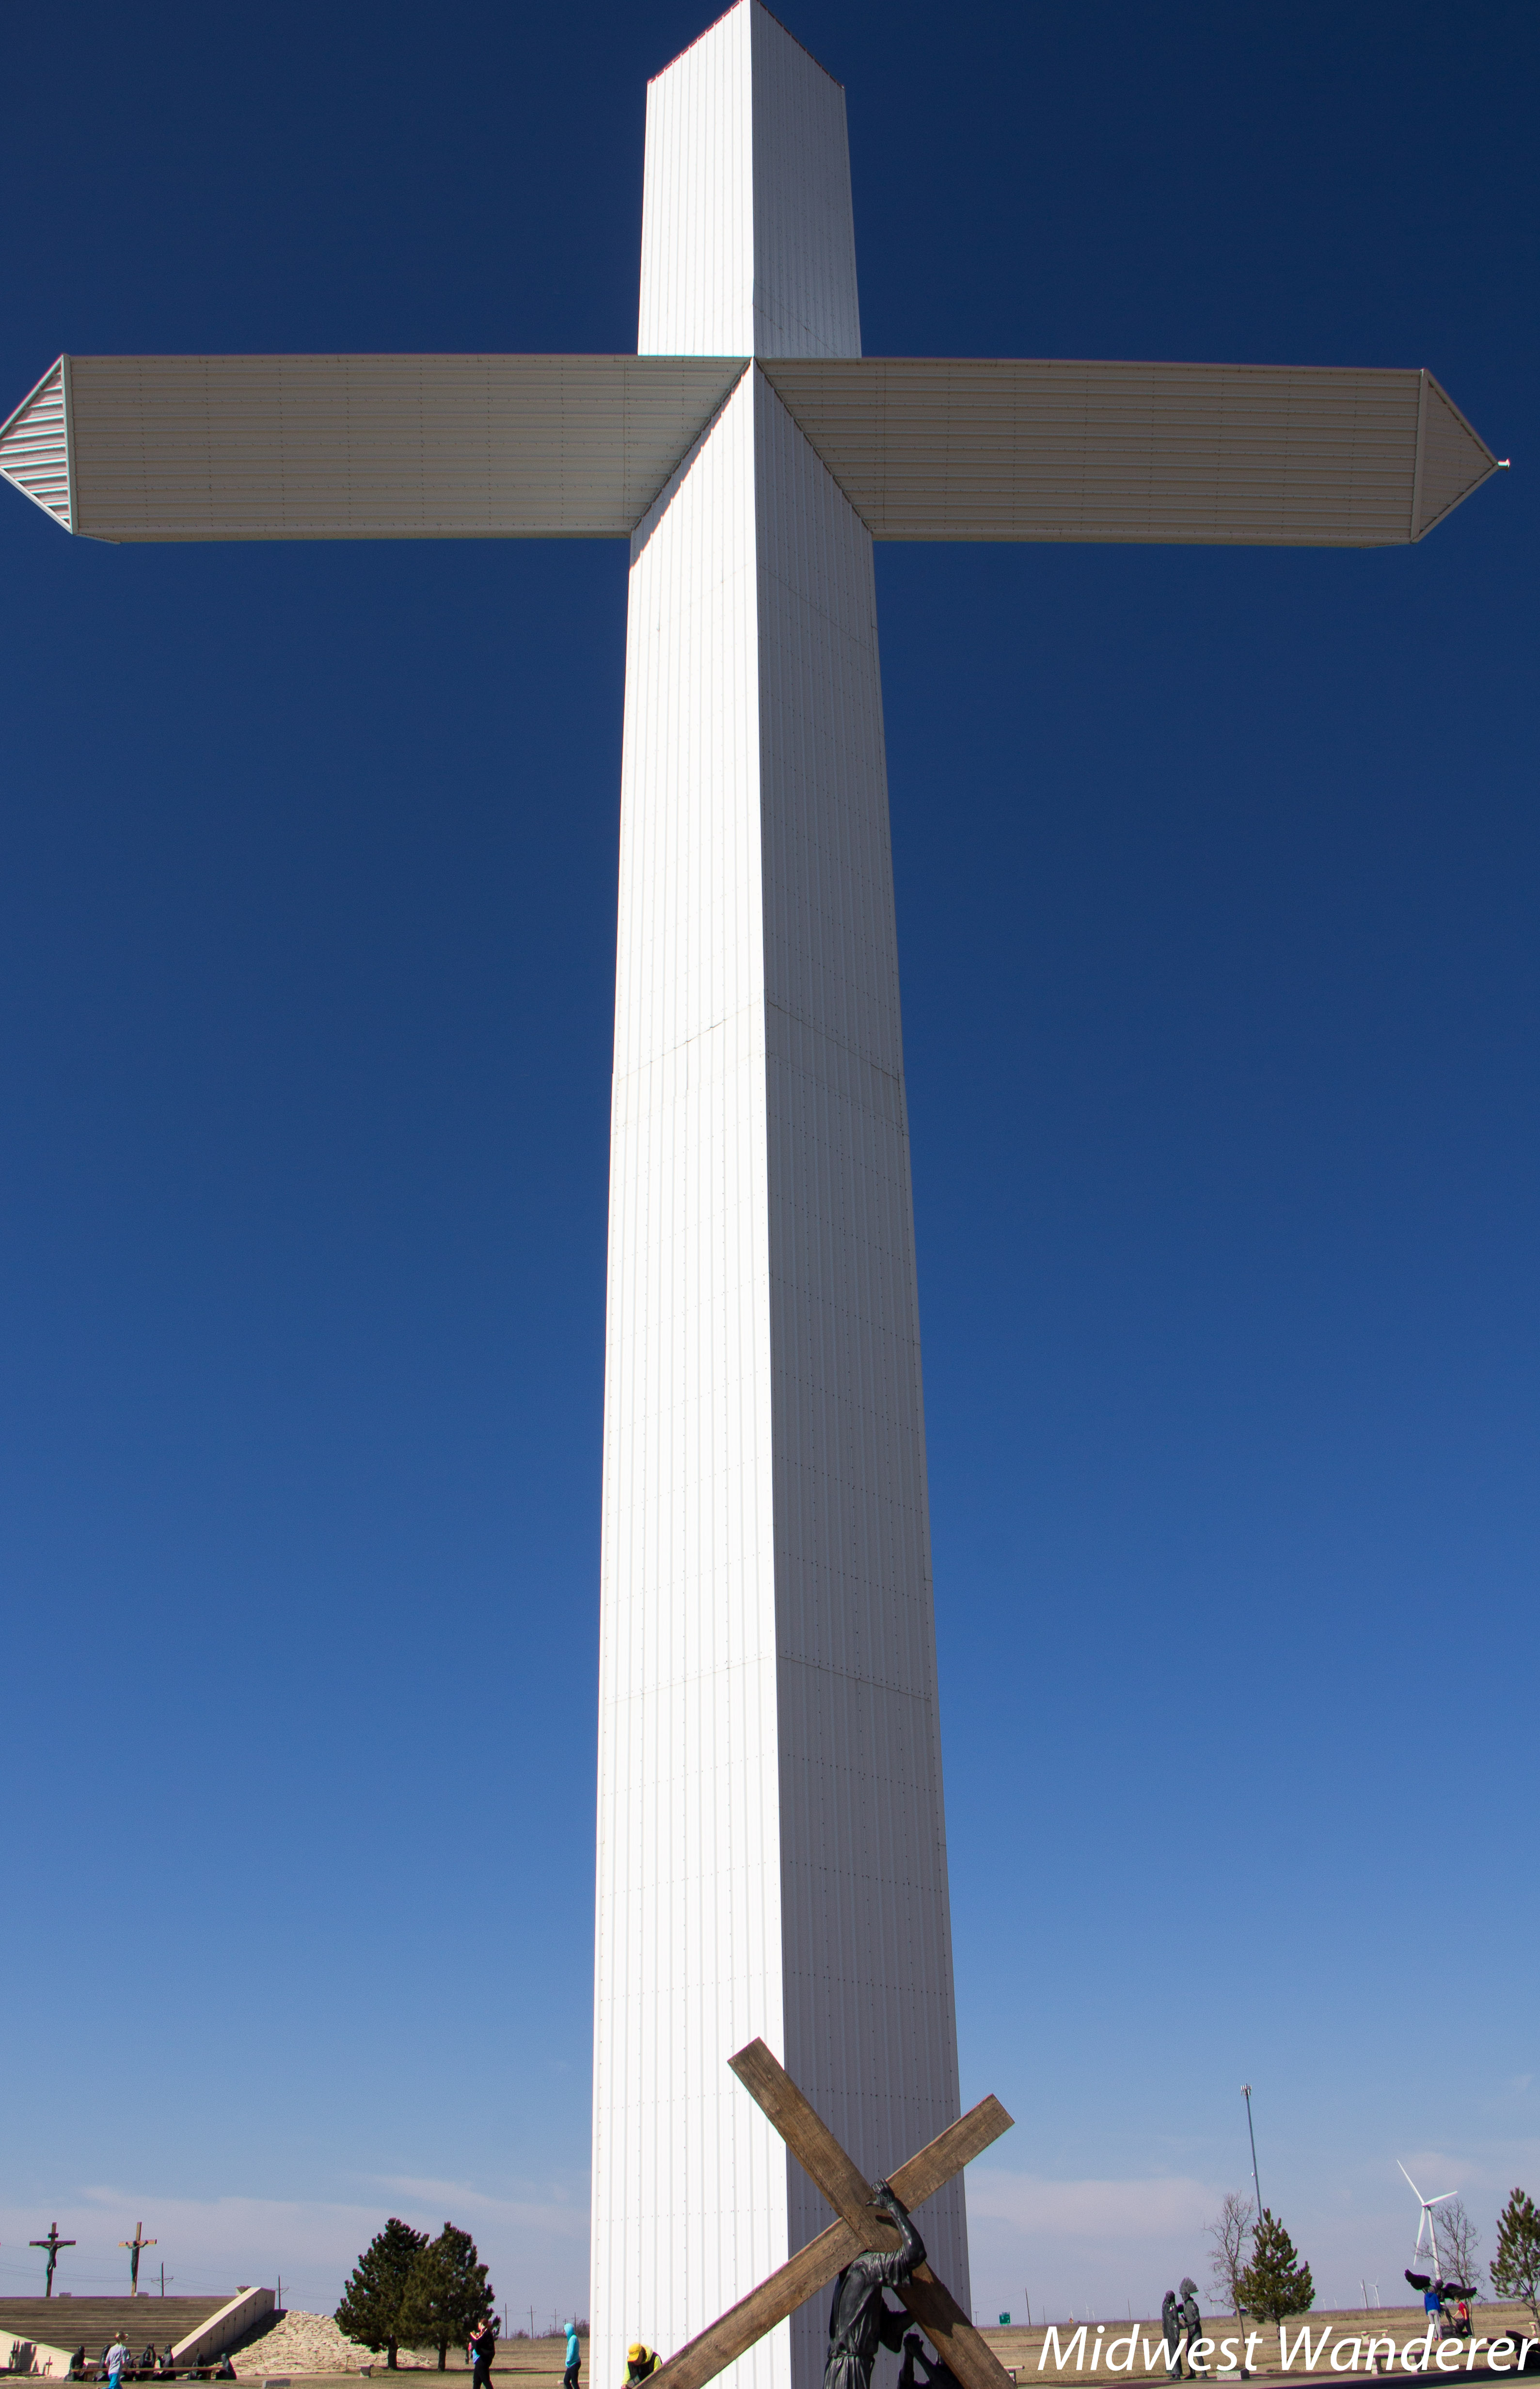 More to Giant Crosses than Visible from the Interstate